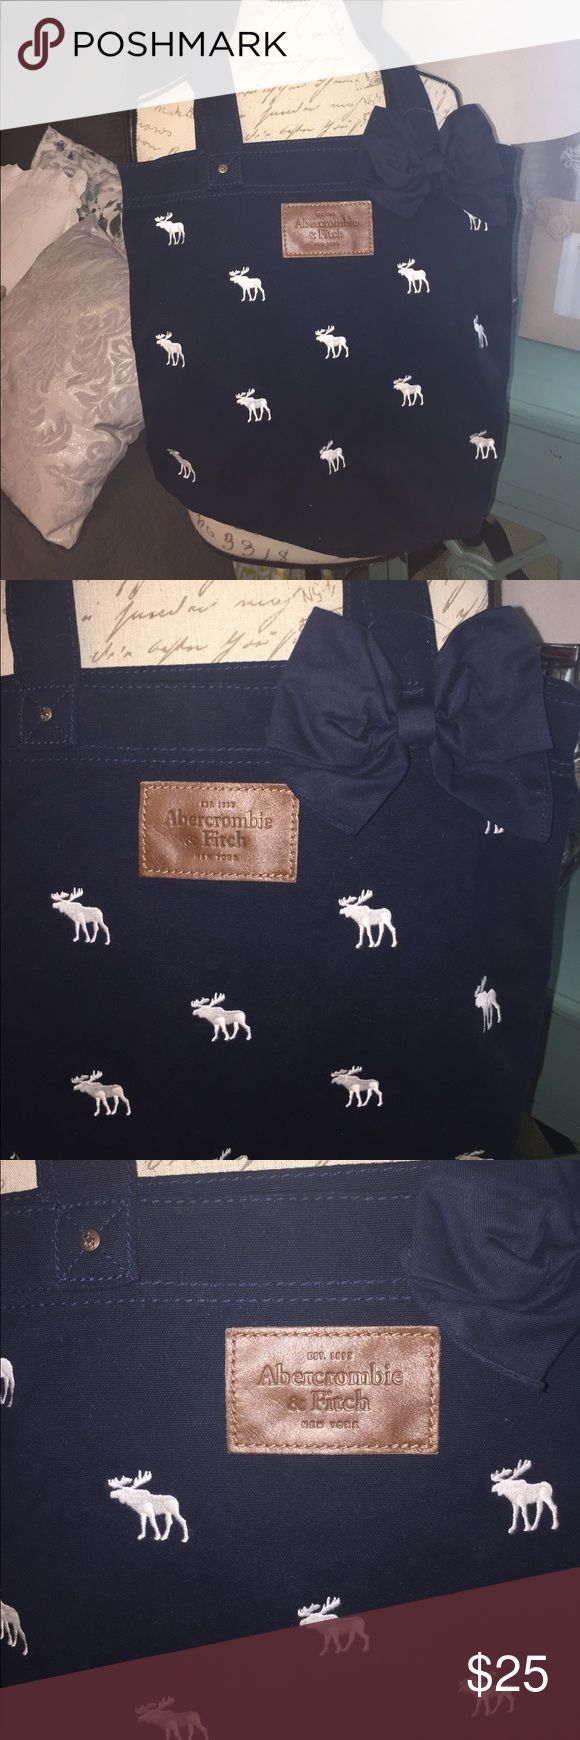 """Abercrombie & Fitch tote New without tags (still has the tag fastener) navy blue tote. Decorated with white embroidered Abercrombie moose all over and a big navy blue bow. Rivets are brushed silvertone stamped with the moose logo and the open rivets in the sides are stamped """"Abercrombie and fitch 1892"""" the front of the bag has a  brown leather patch that reads """" EST. 1892 Abercrombie & Fitch NEW YORK"""" has one side pocket inside. And reinforced handles. From a smoke free and pet free home…"""